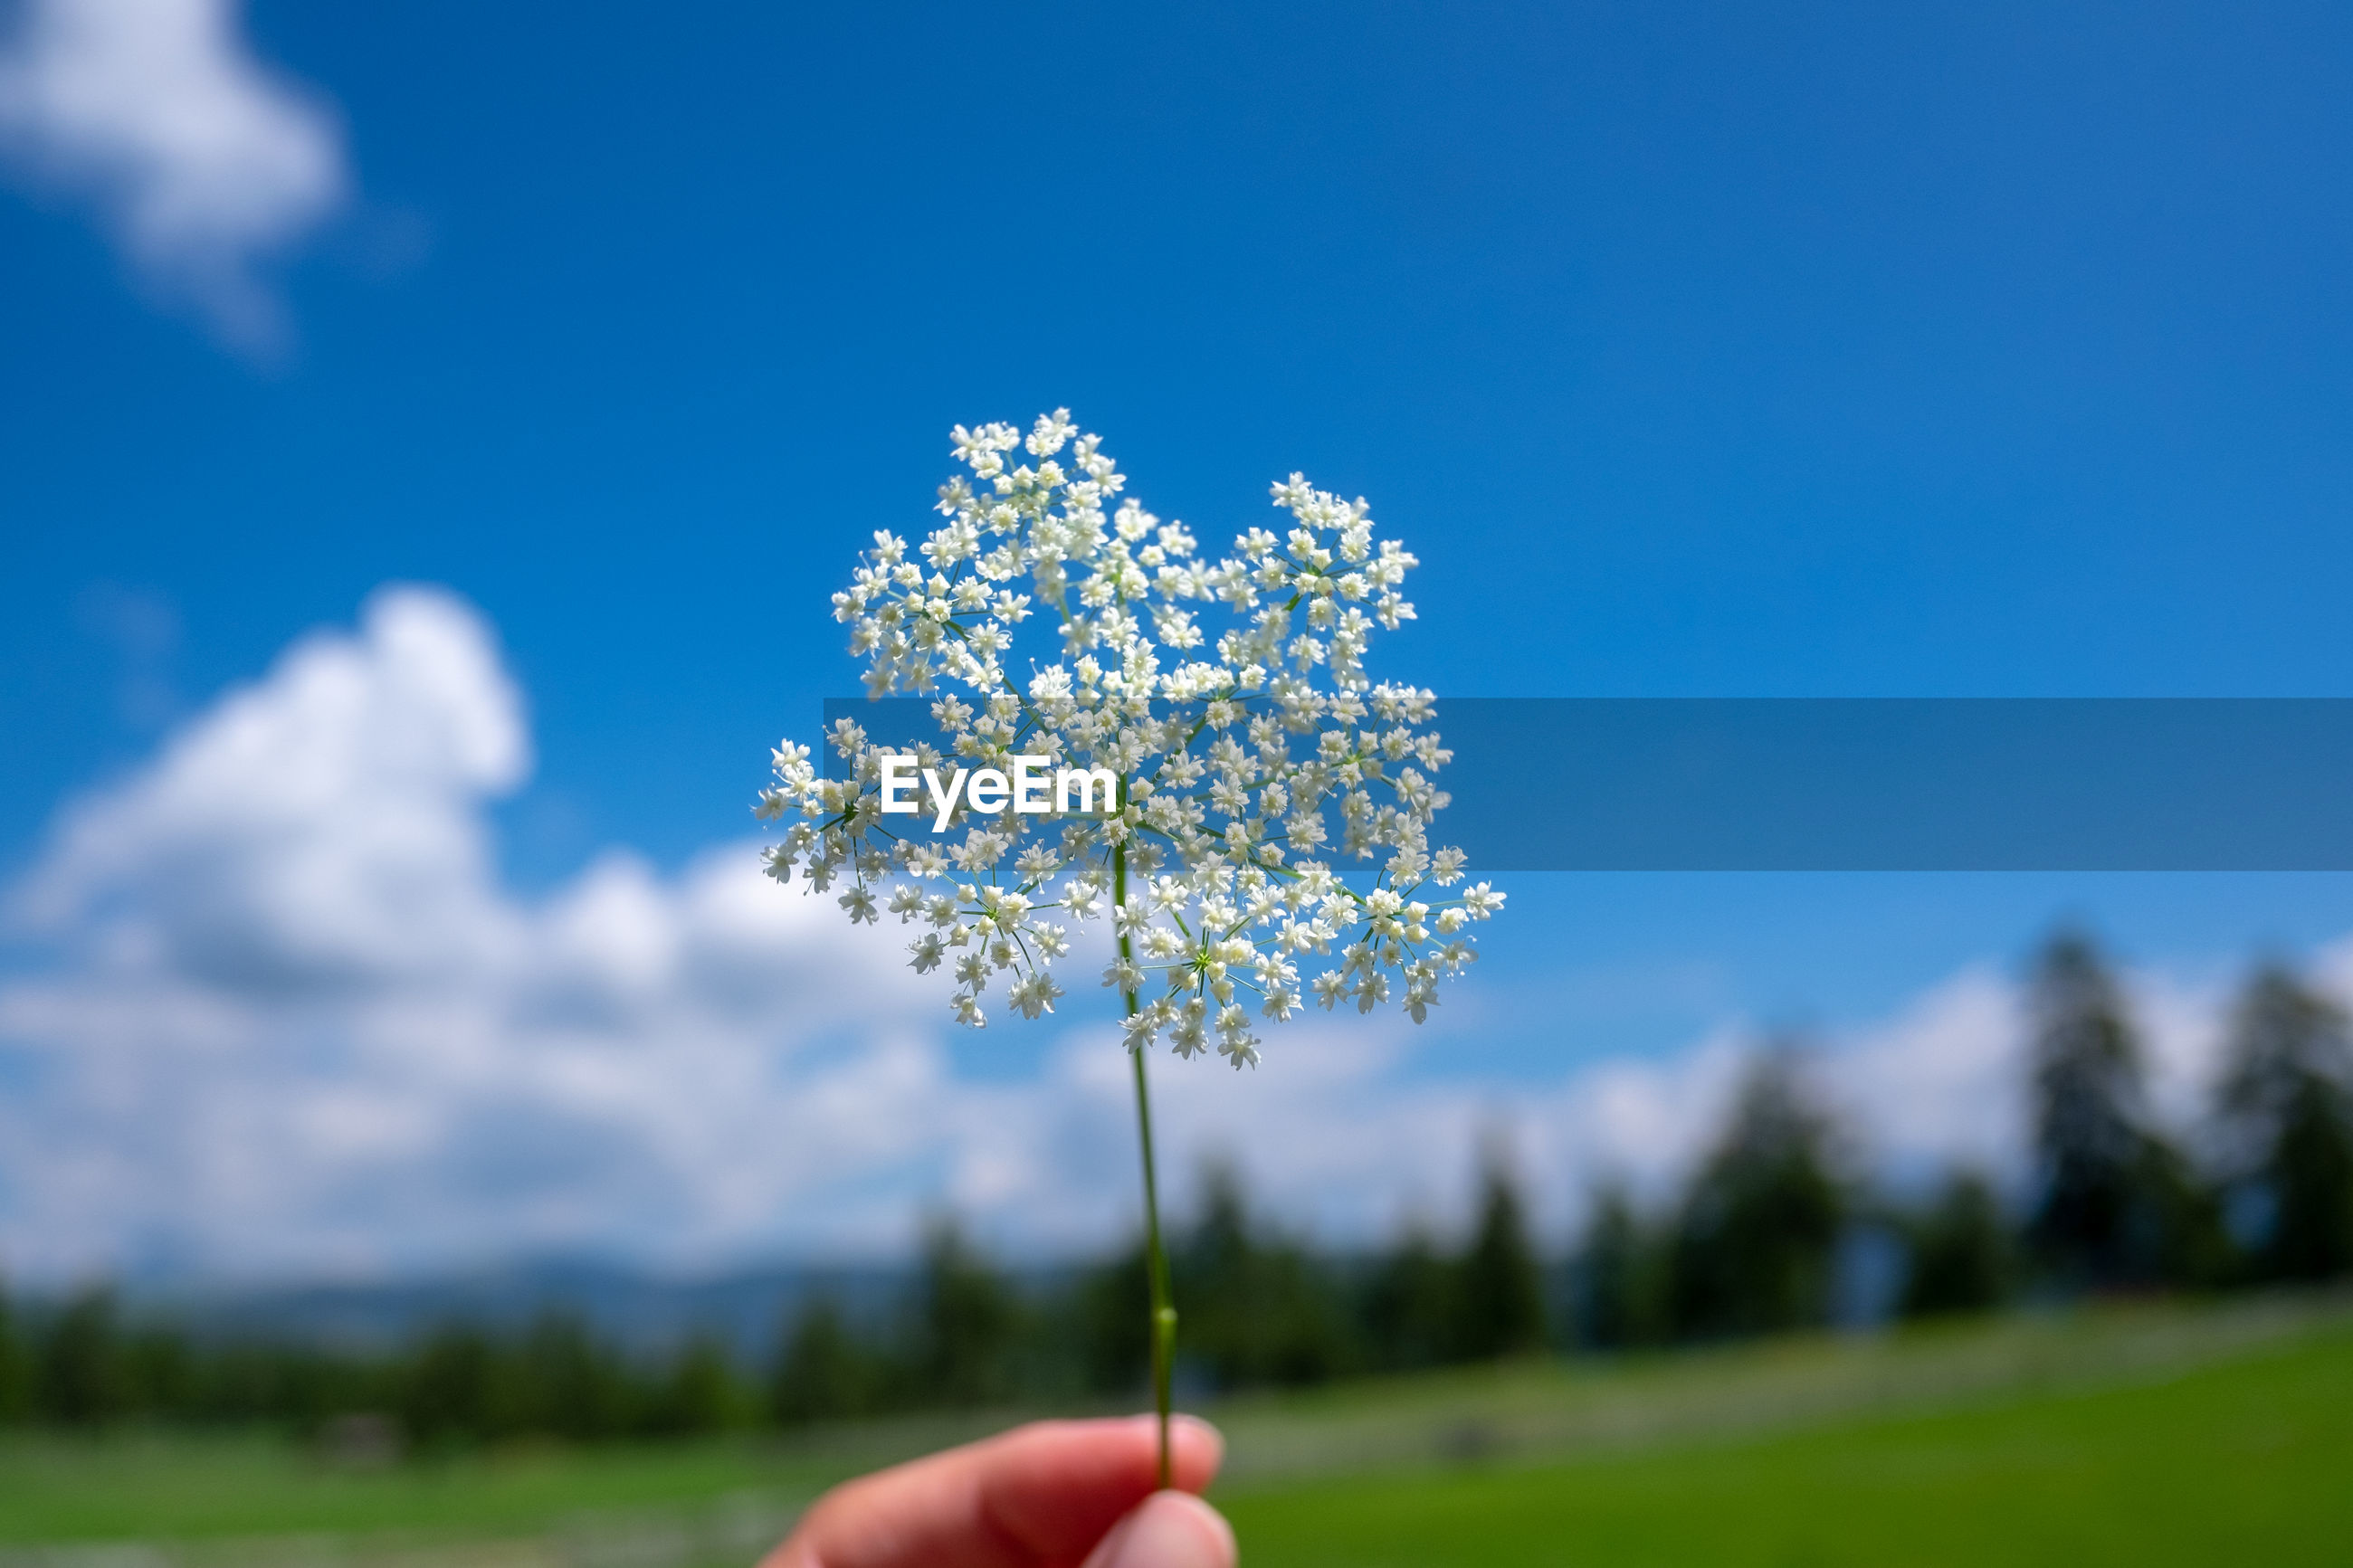 Close-up of hand holding flowering plant against blue sky during sunny day